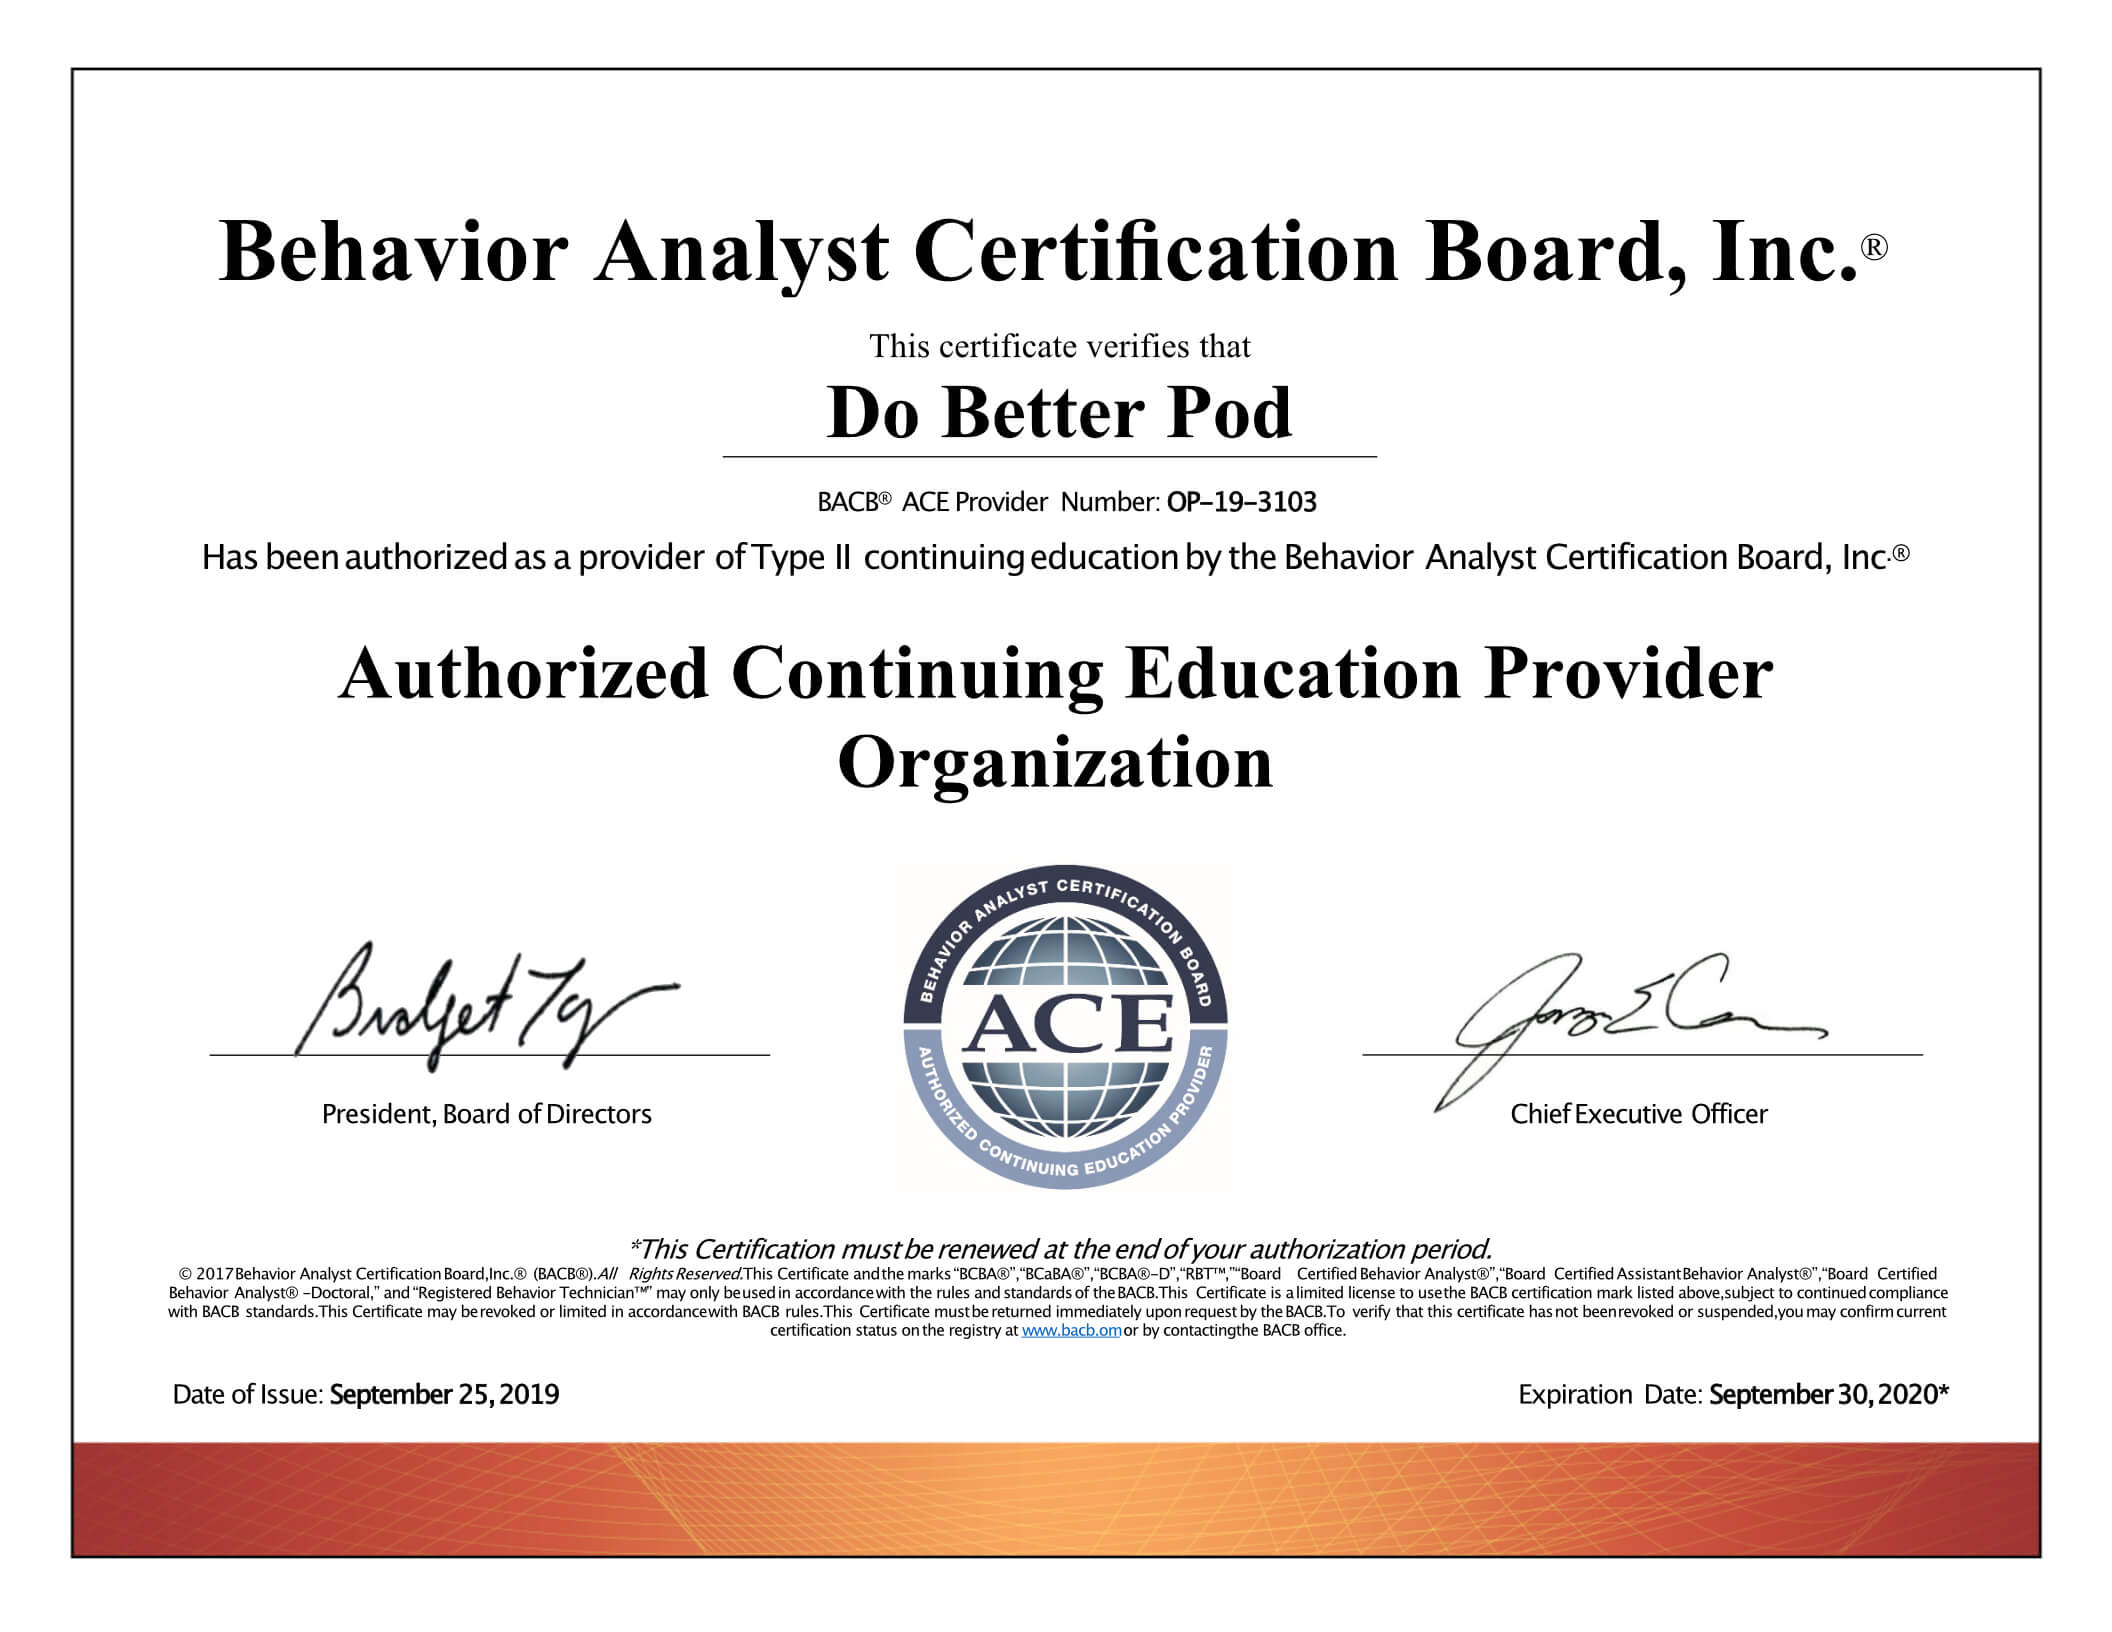 BACB ACE Certificate